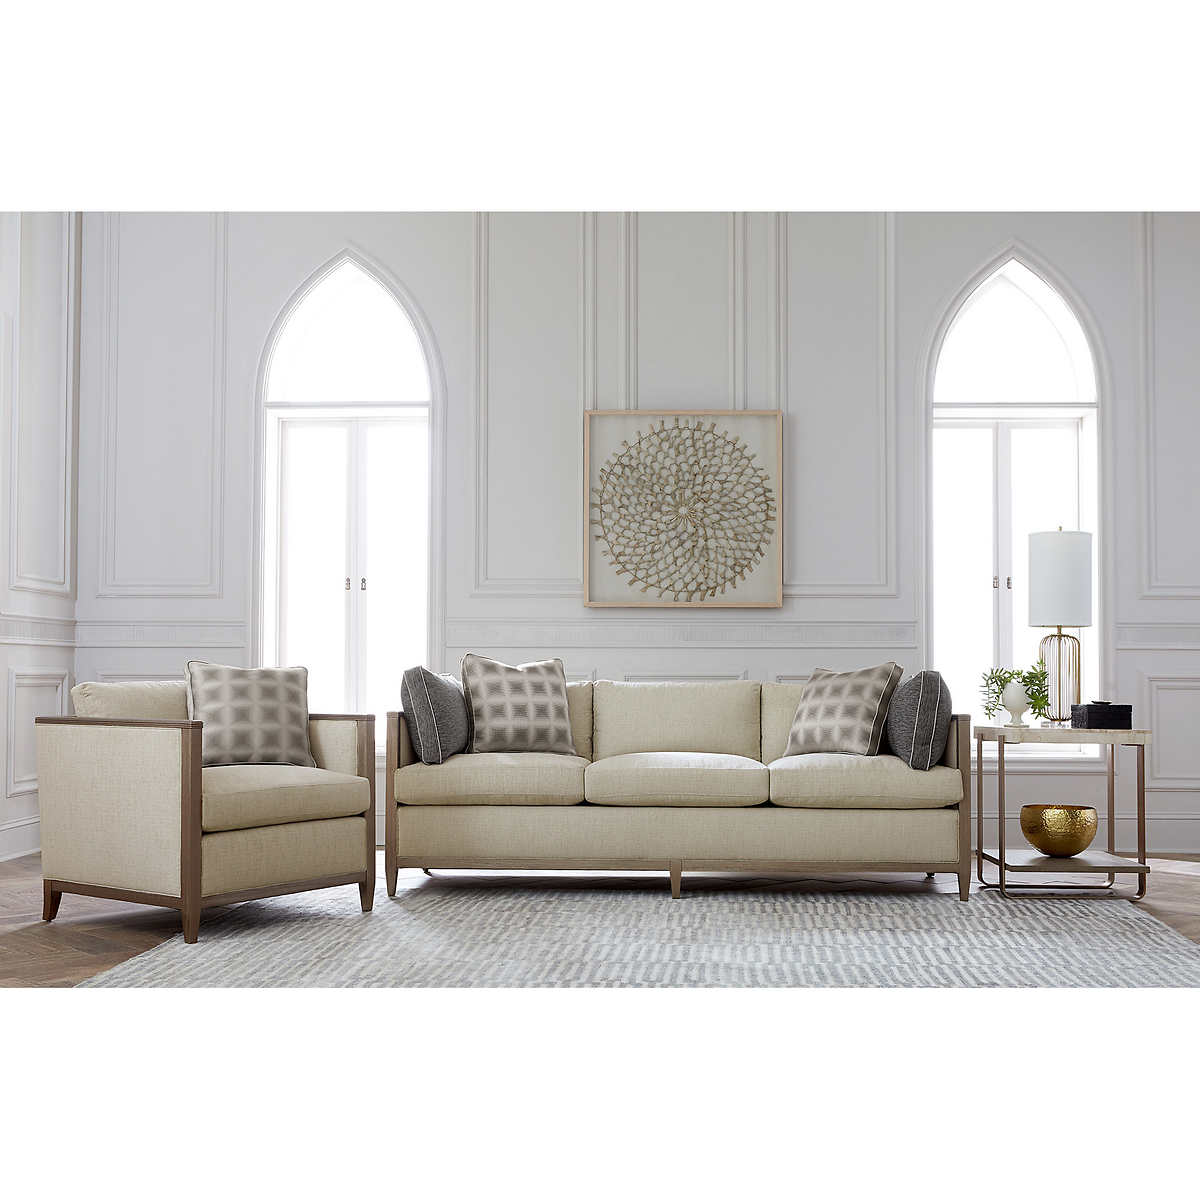 Living Room Bed Fabric Sofas Sectionals